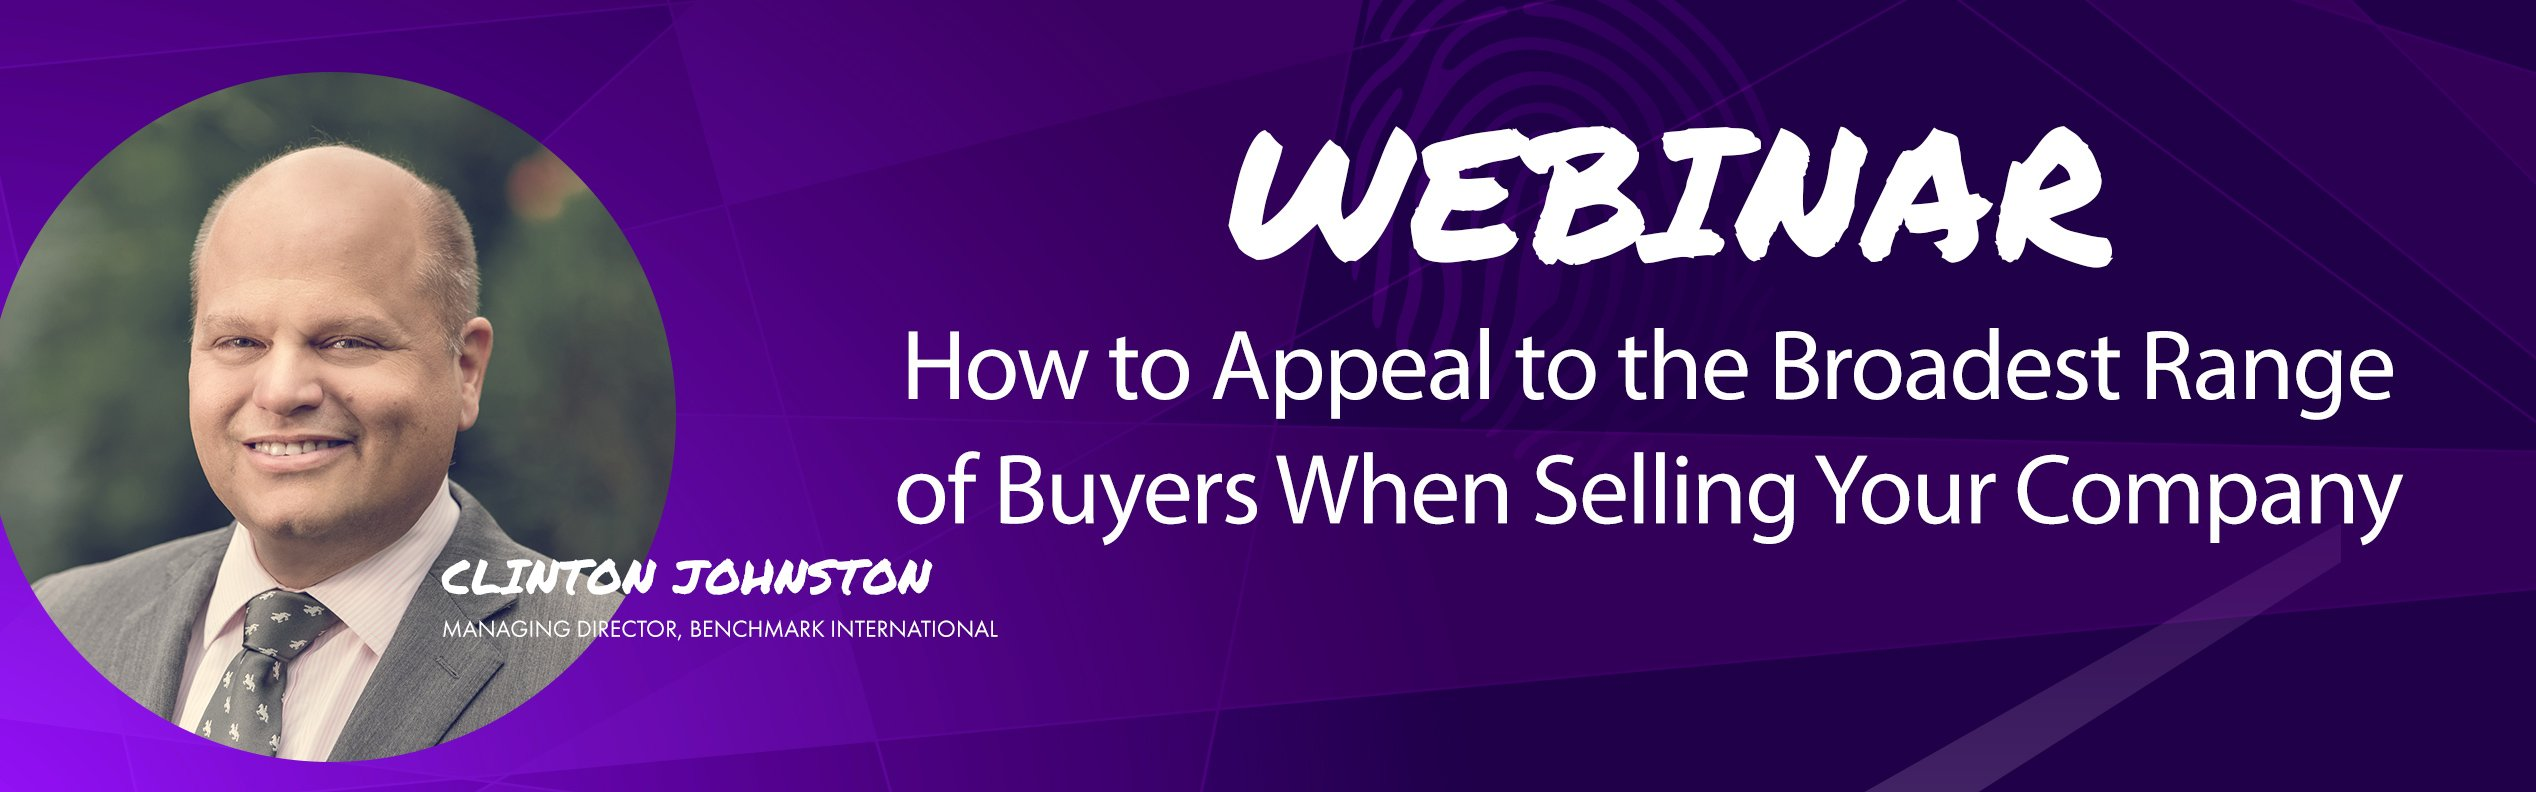 Range of Buyers when Selling Your Company Webinar